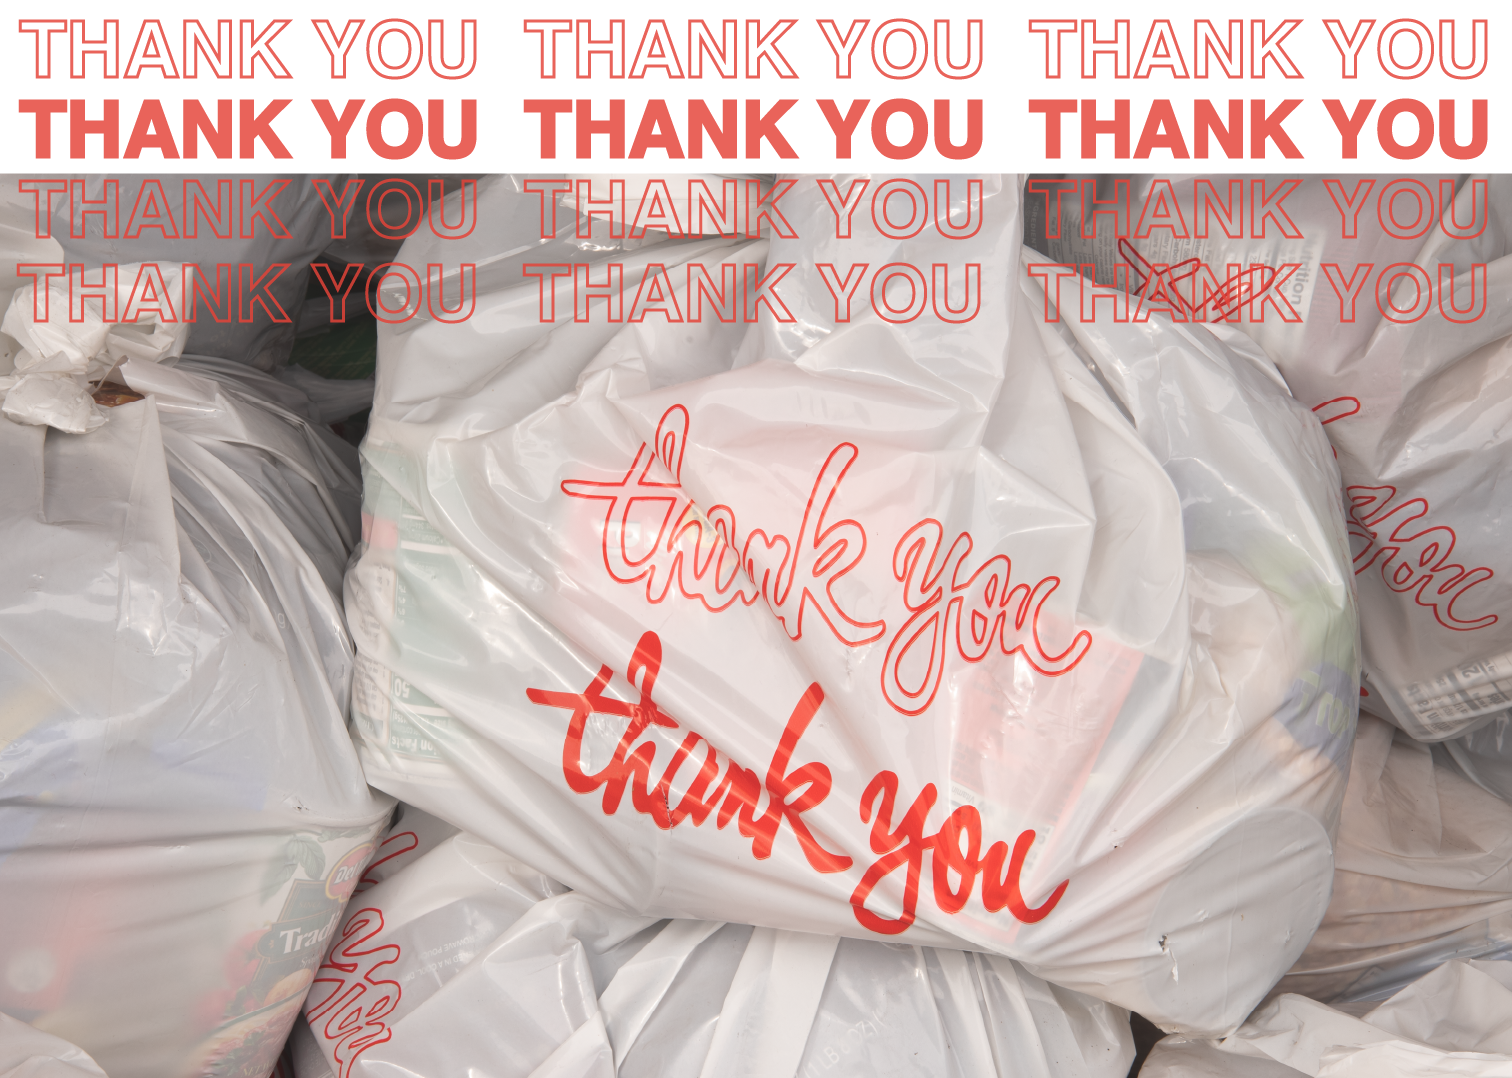 A grocery bag that says thank youon the side.